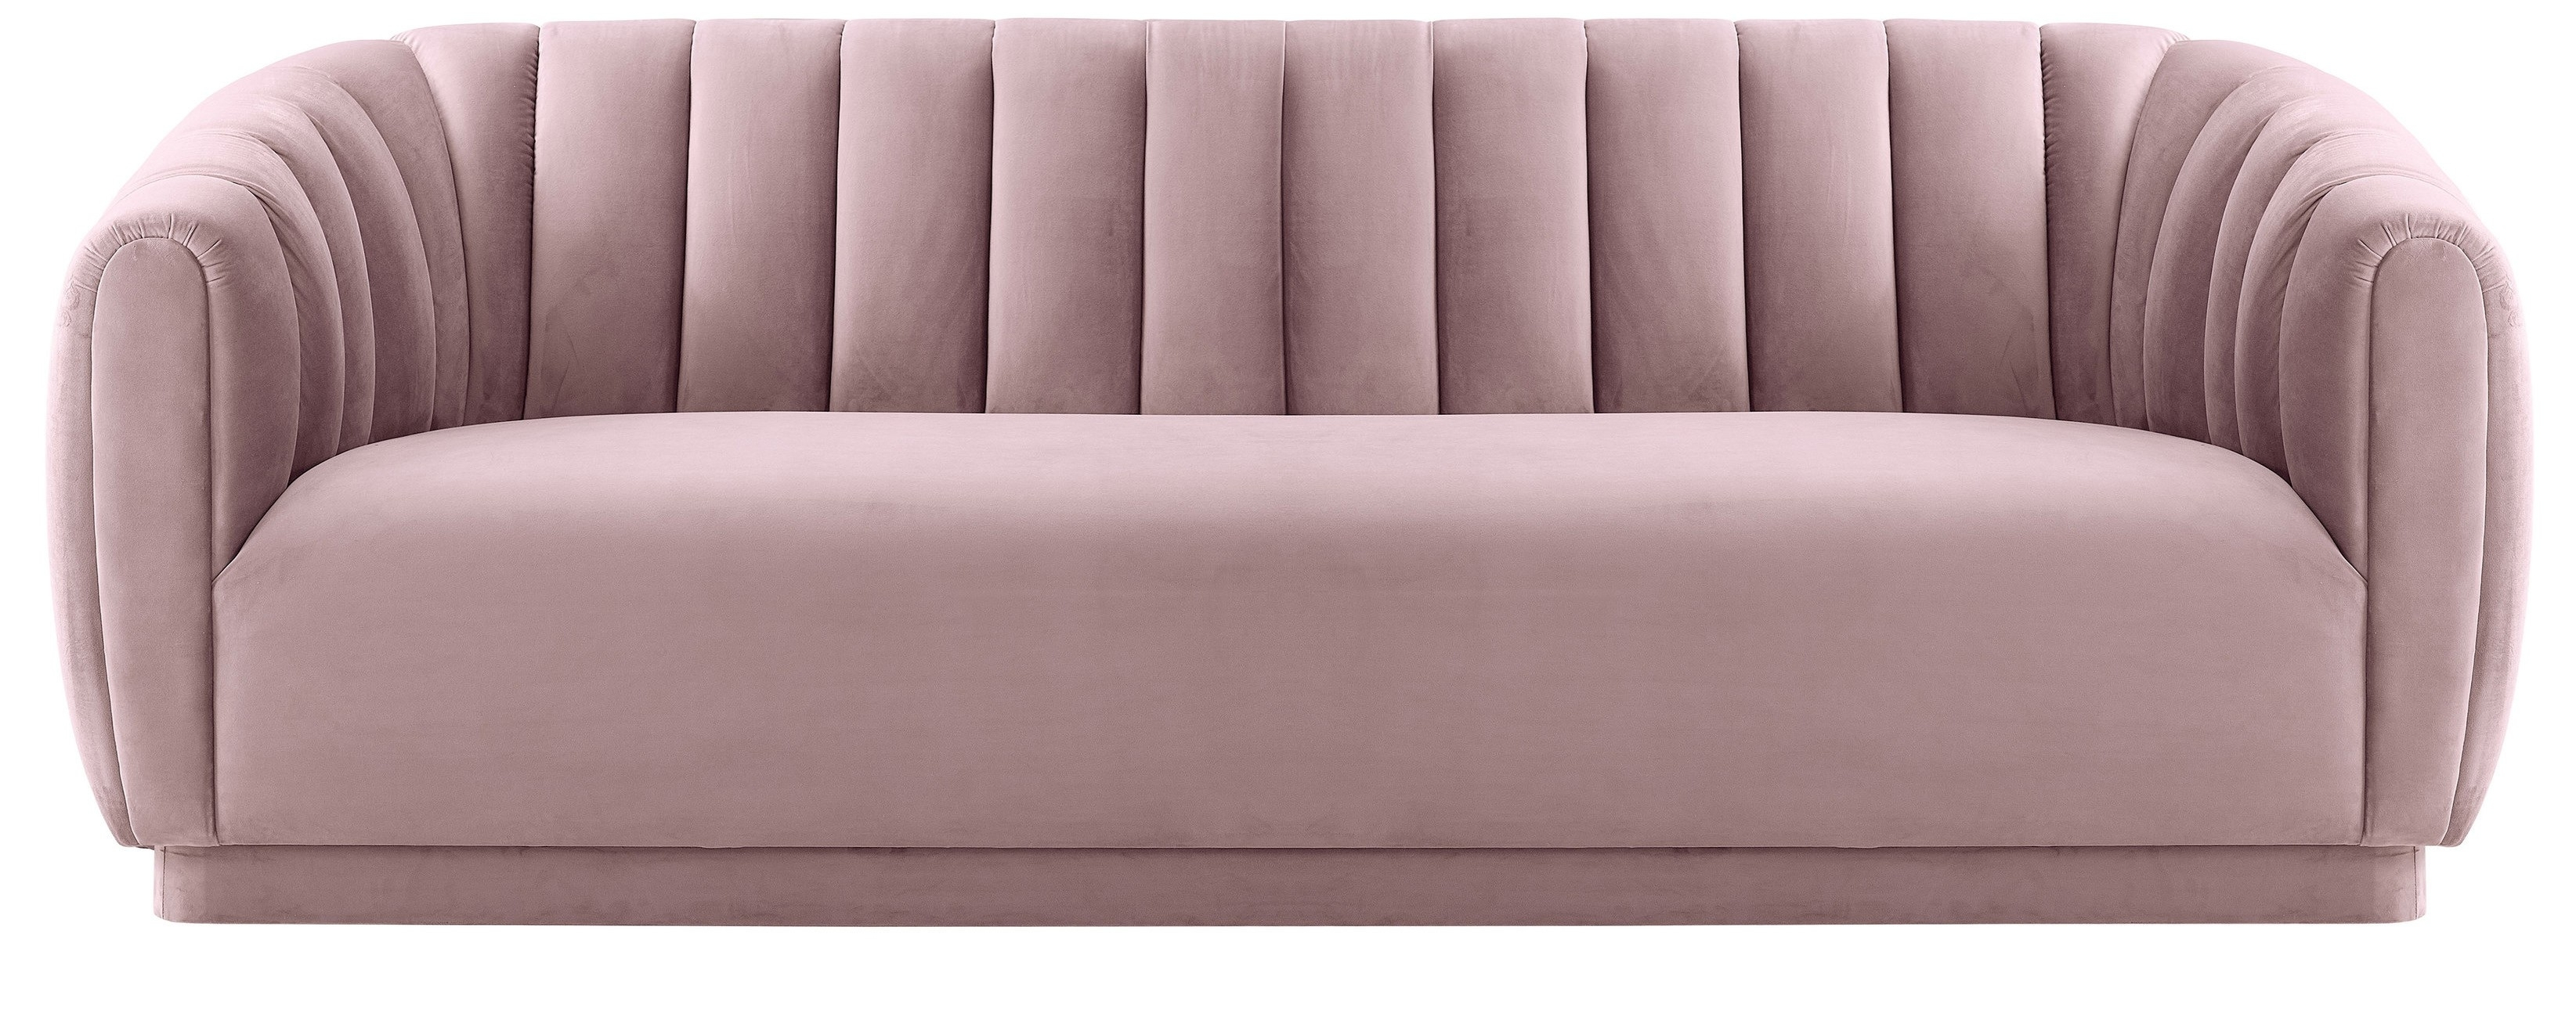 Marissa Velvet Sofa, Blush – Velvet – Trends – Furniture Within Marissa Ii 3 Piece Sectionals (View 23 of 25)